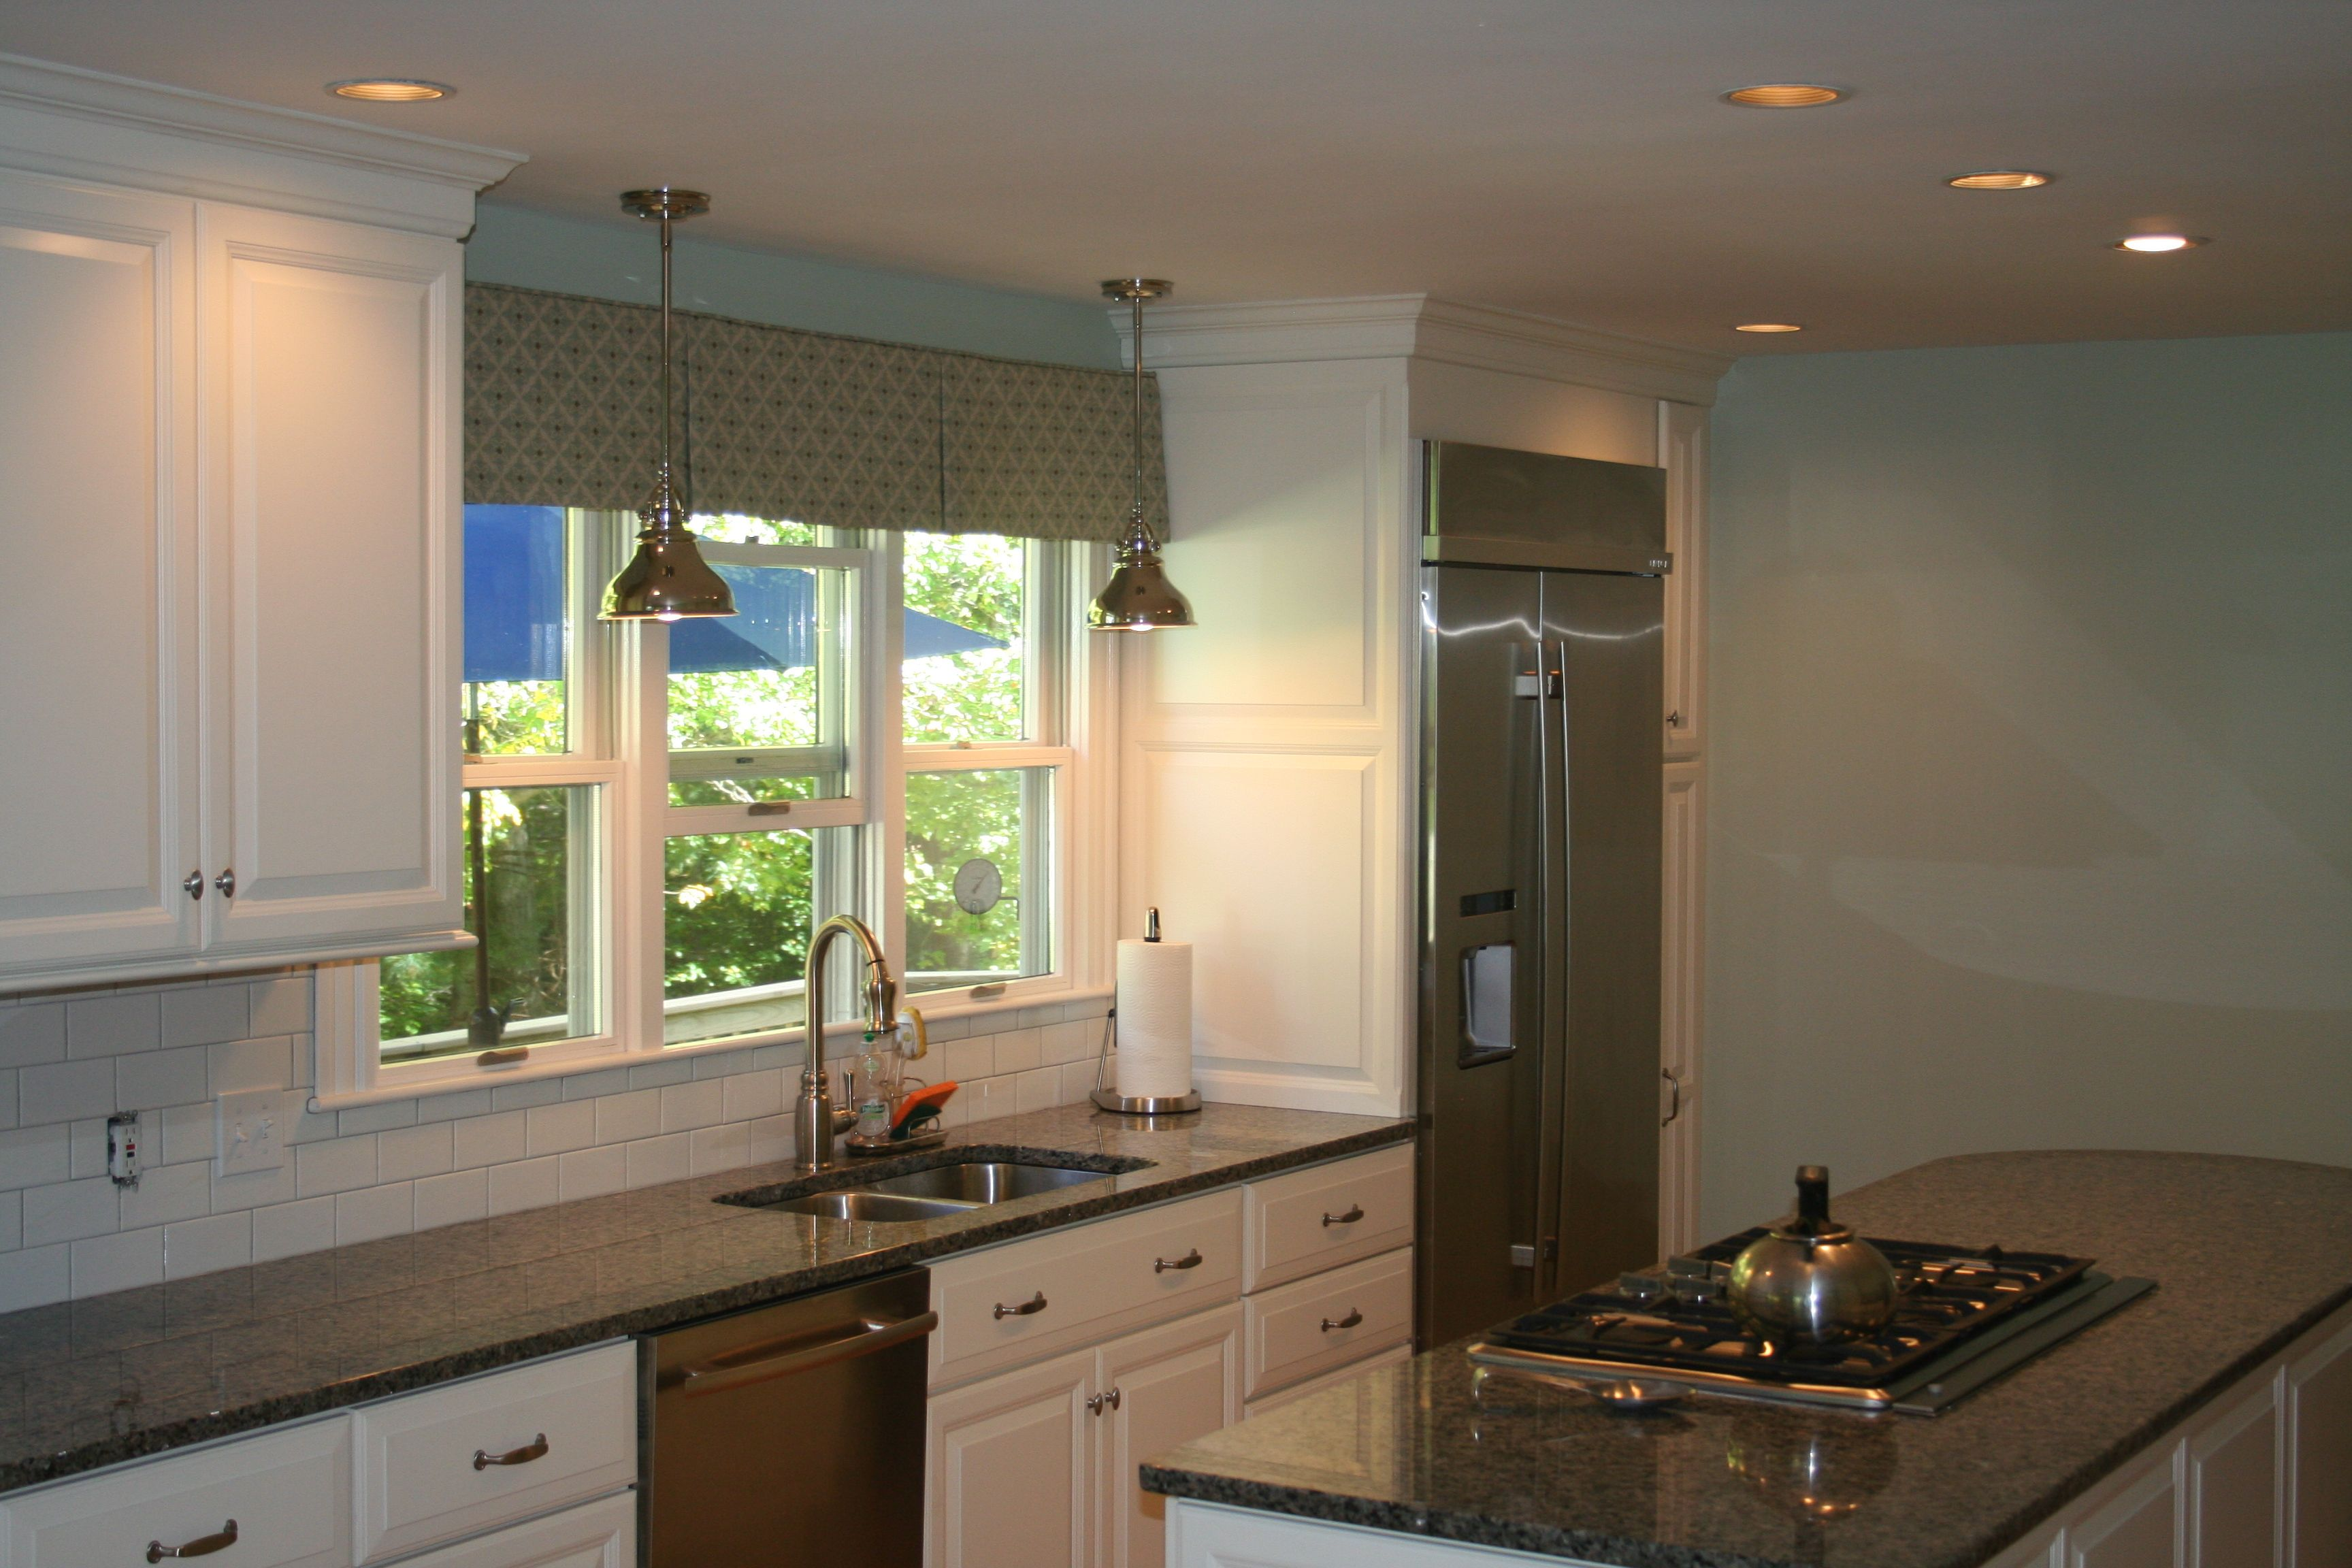 Candlelight Cabinetry In Aurora White Granite Island Countertop With Cooktop Stainless Steel App Island Countertops Candlelight Cabinetry Kitchen Inspirations